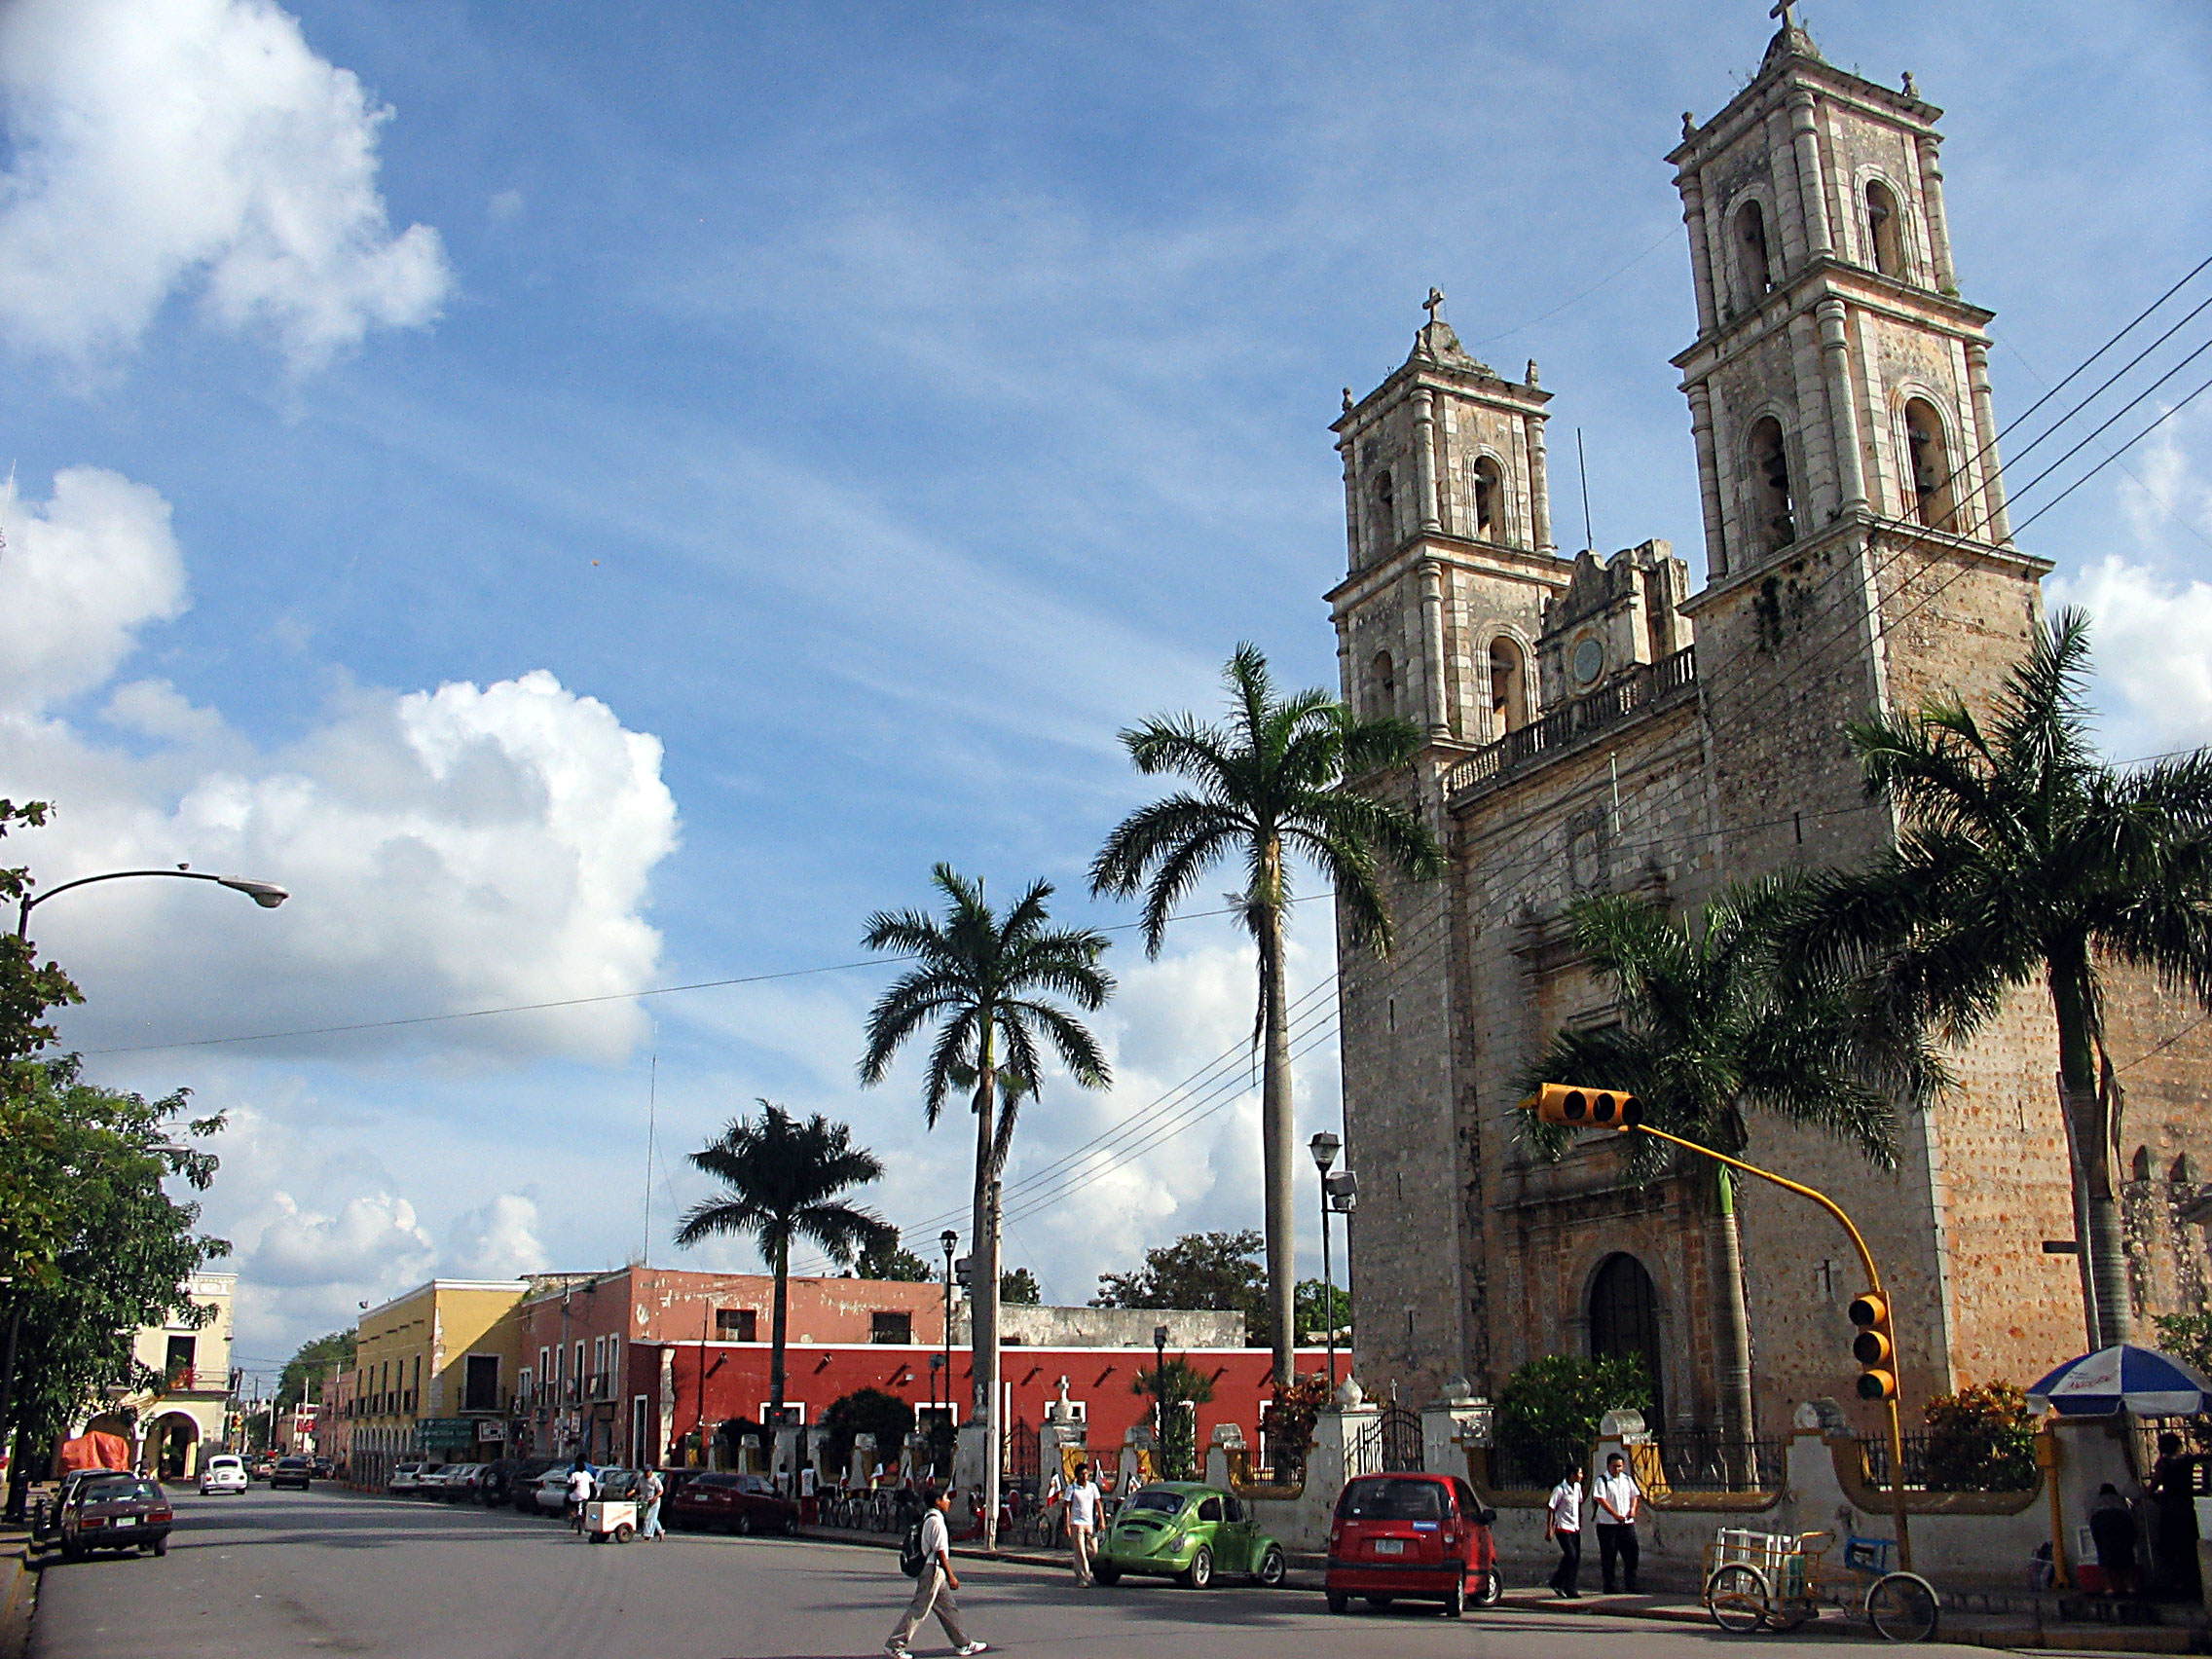 Valladolid Mexico  City new picture : Valladolid Mexico Cathedral Wikipedia, the free ...